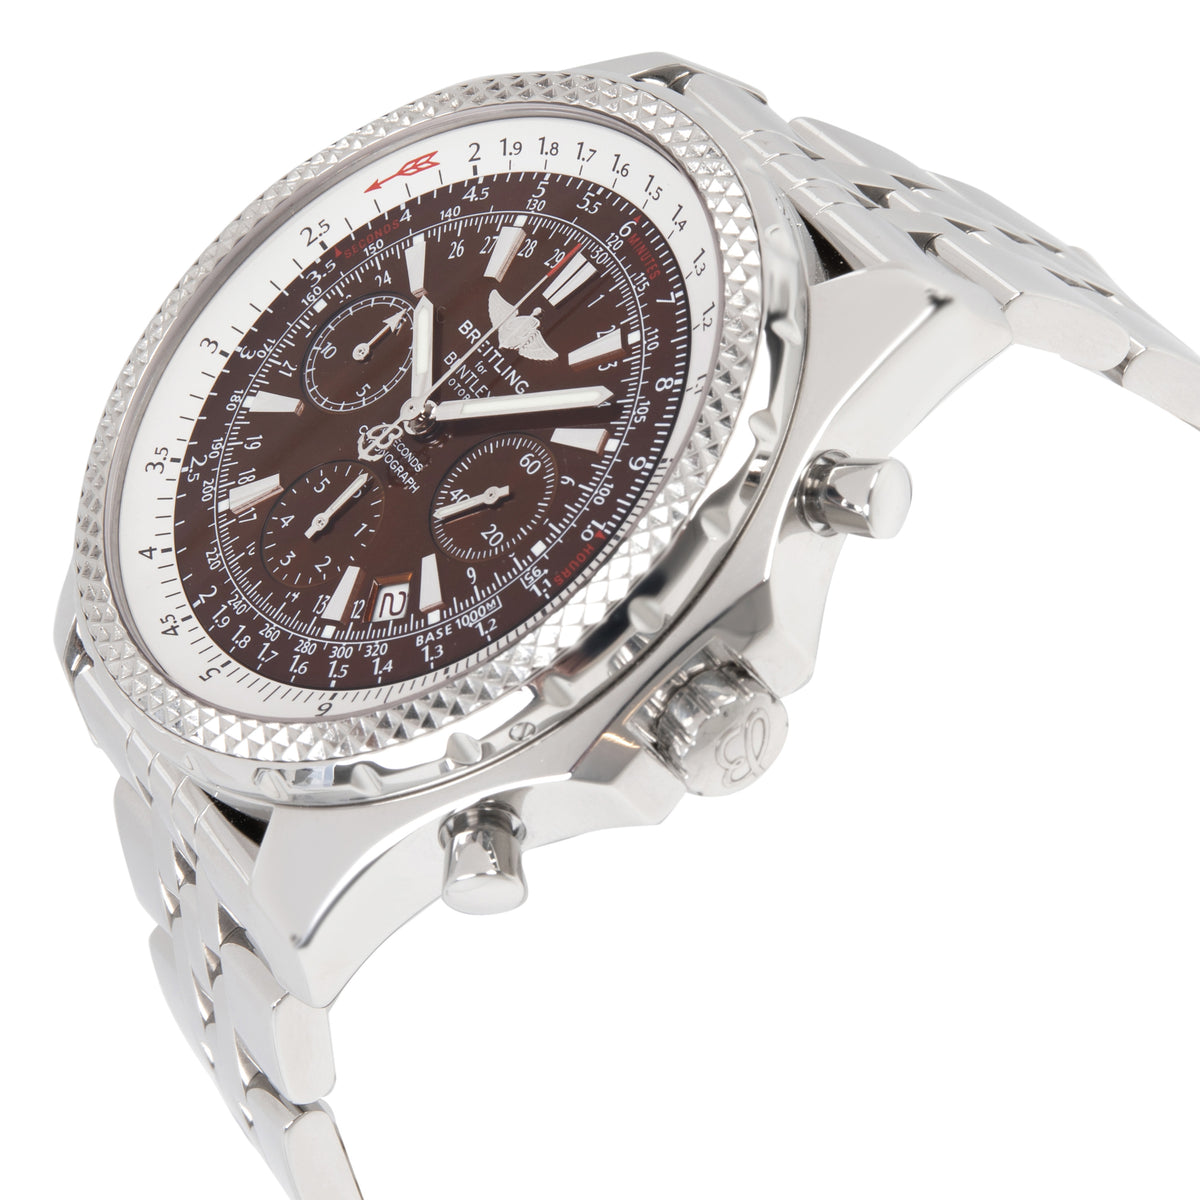 Breitling Bentley A25362 Men's Watch in  Stainless Steel